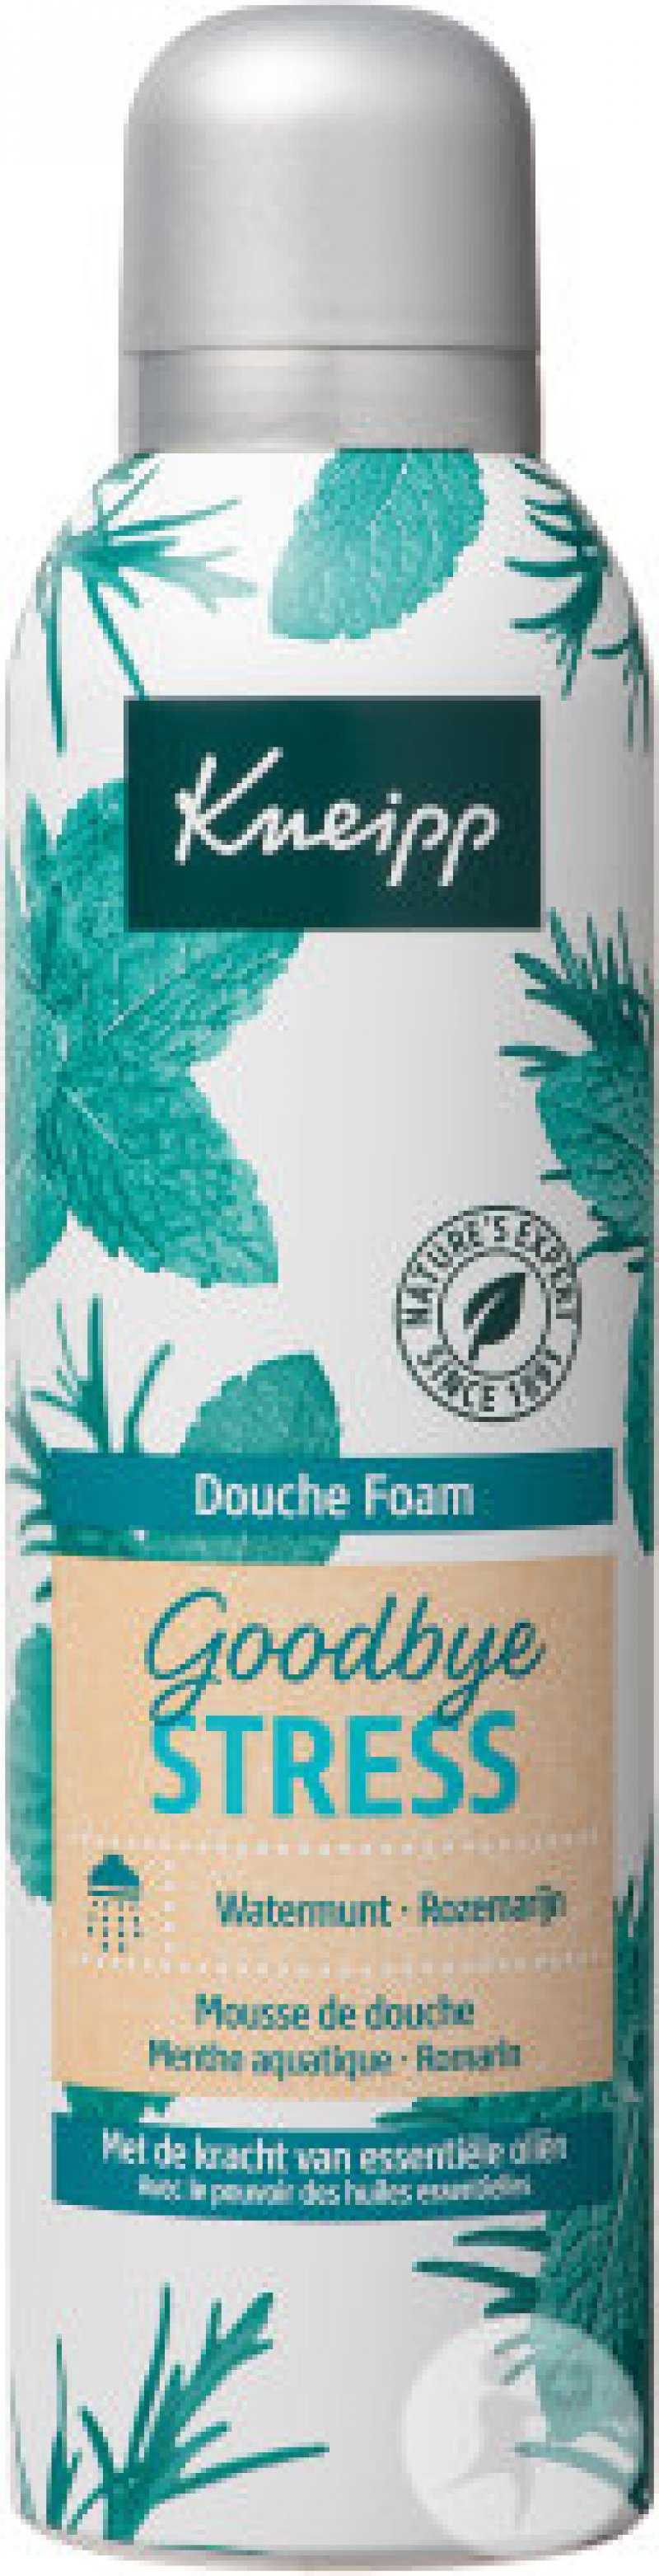 Douche foam - Goodbye Stress